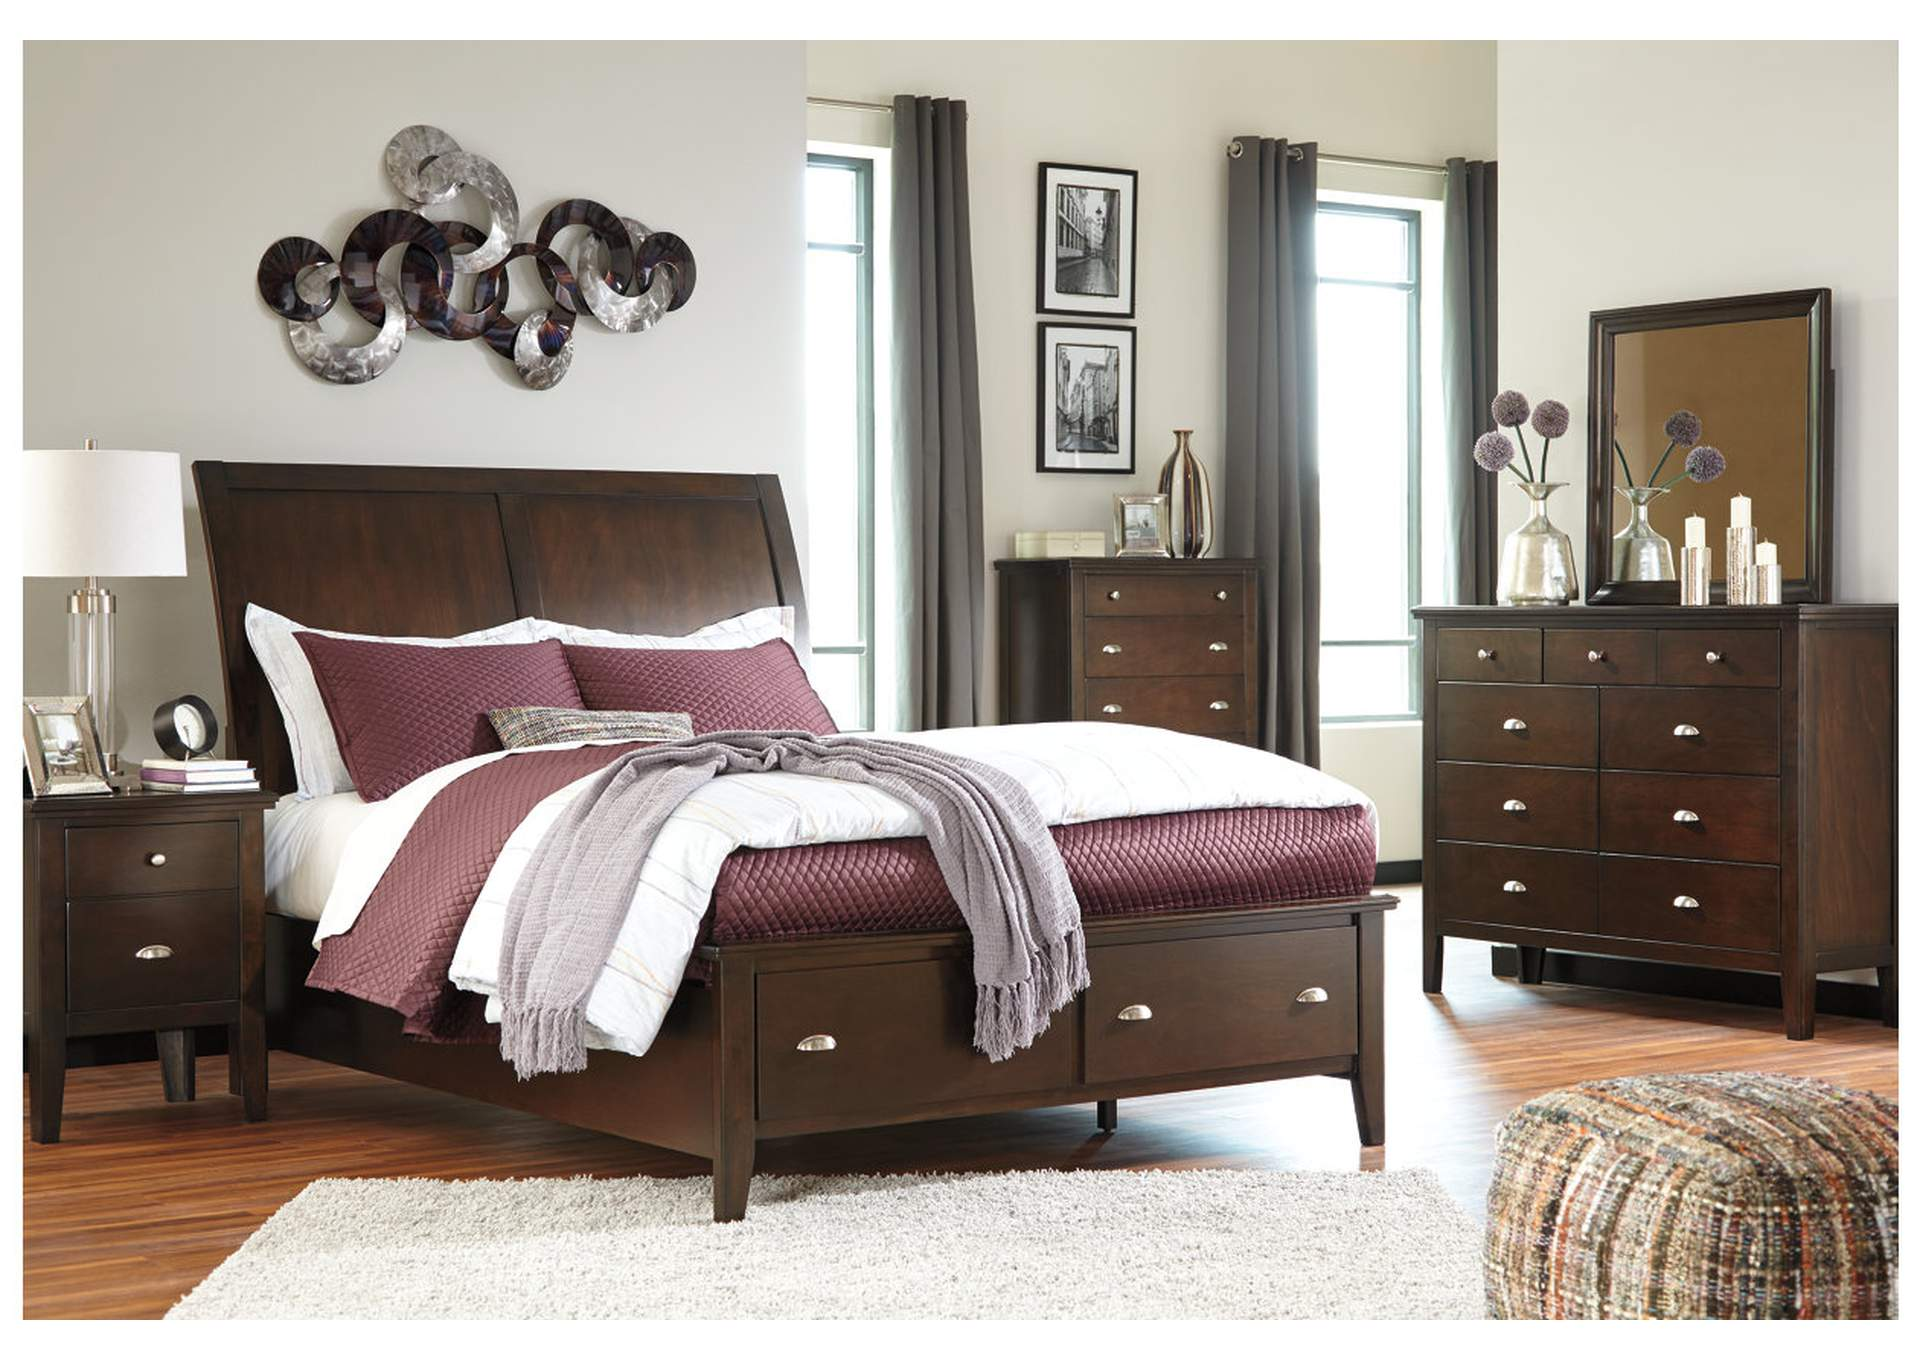 Evanburg Brown King Sleigh Storage Bed w/Dresser & Mirror,Signature Design By Ashley